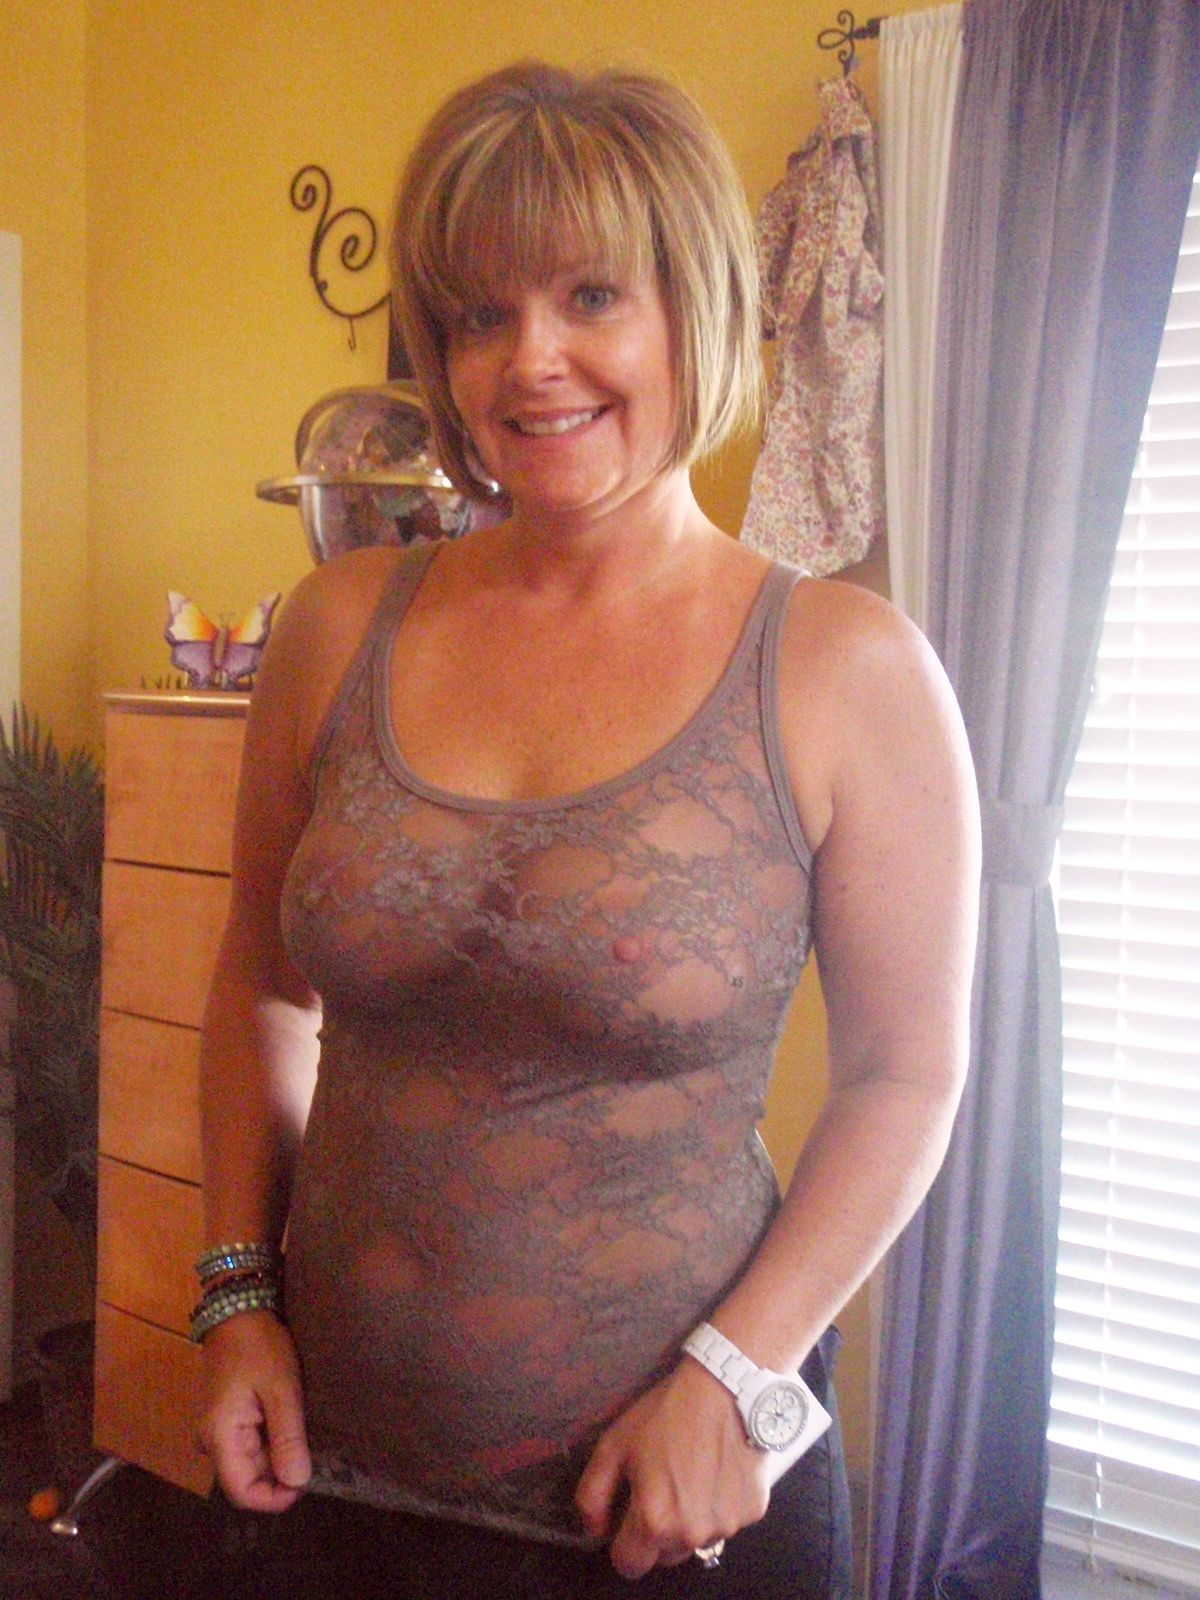 grannies-pose-hot-older-cougar-see-thru-bra-pussy-drink-video